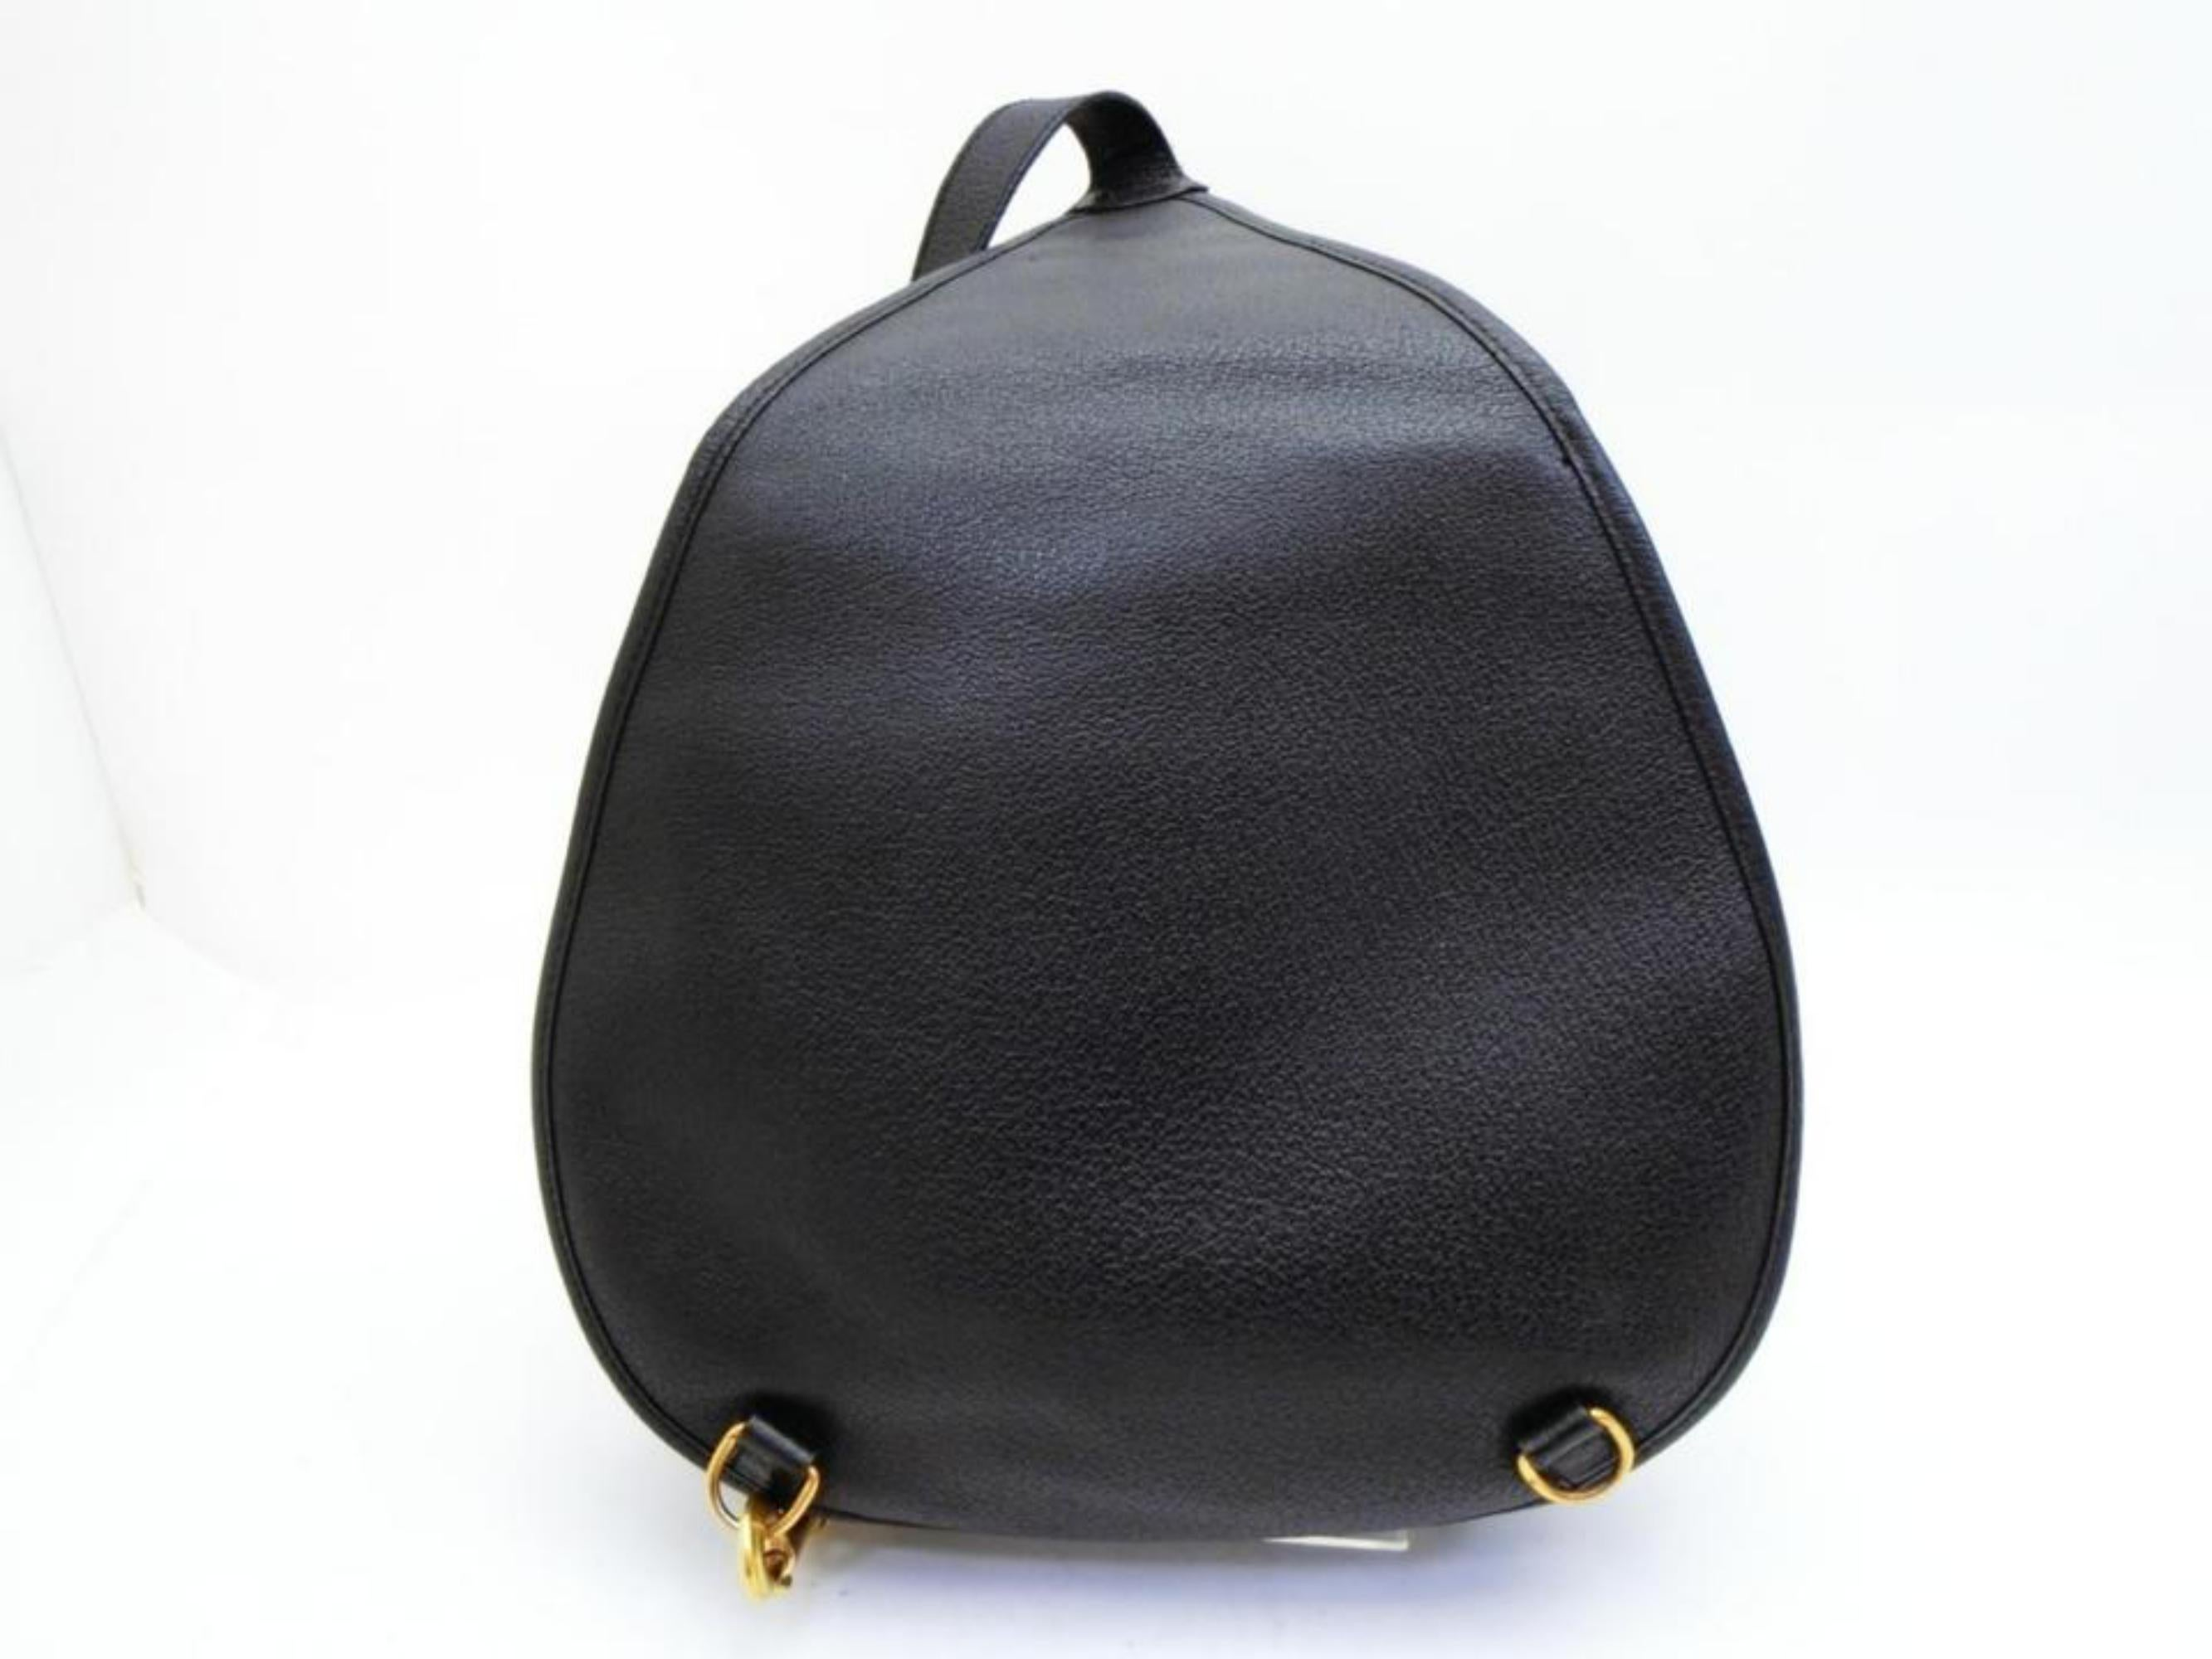 c3f7f9a75b41 Gucci Horsebit Body 233519 Black Suede Leather Backpack For Sale at 1stdibs